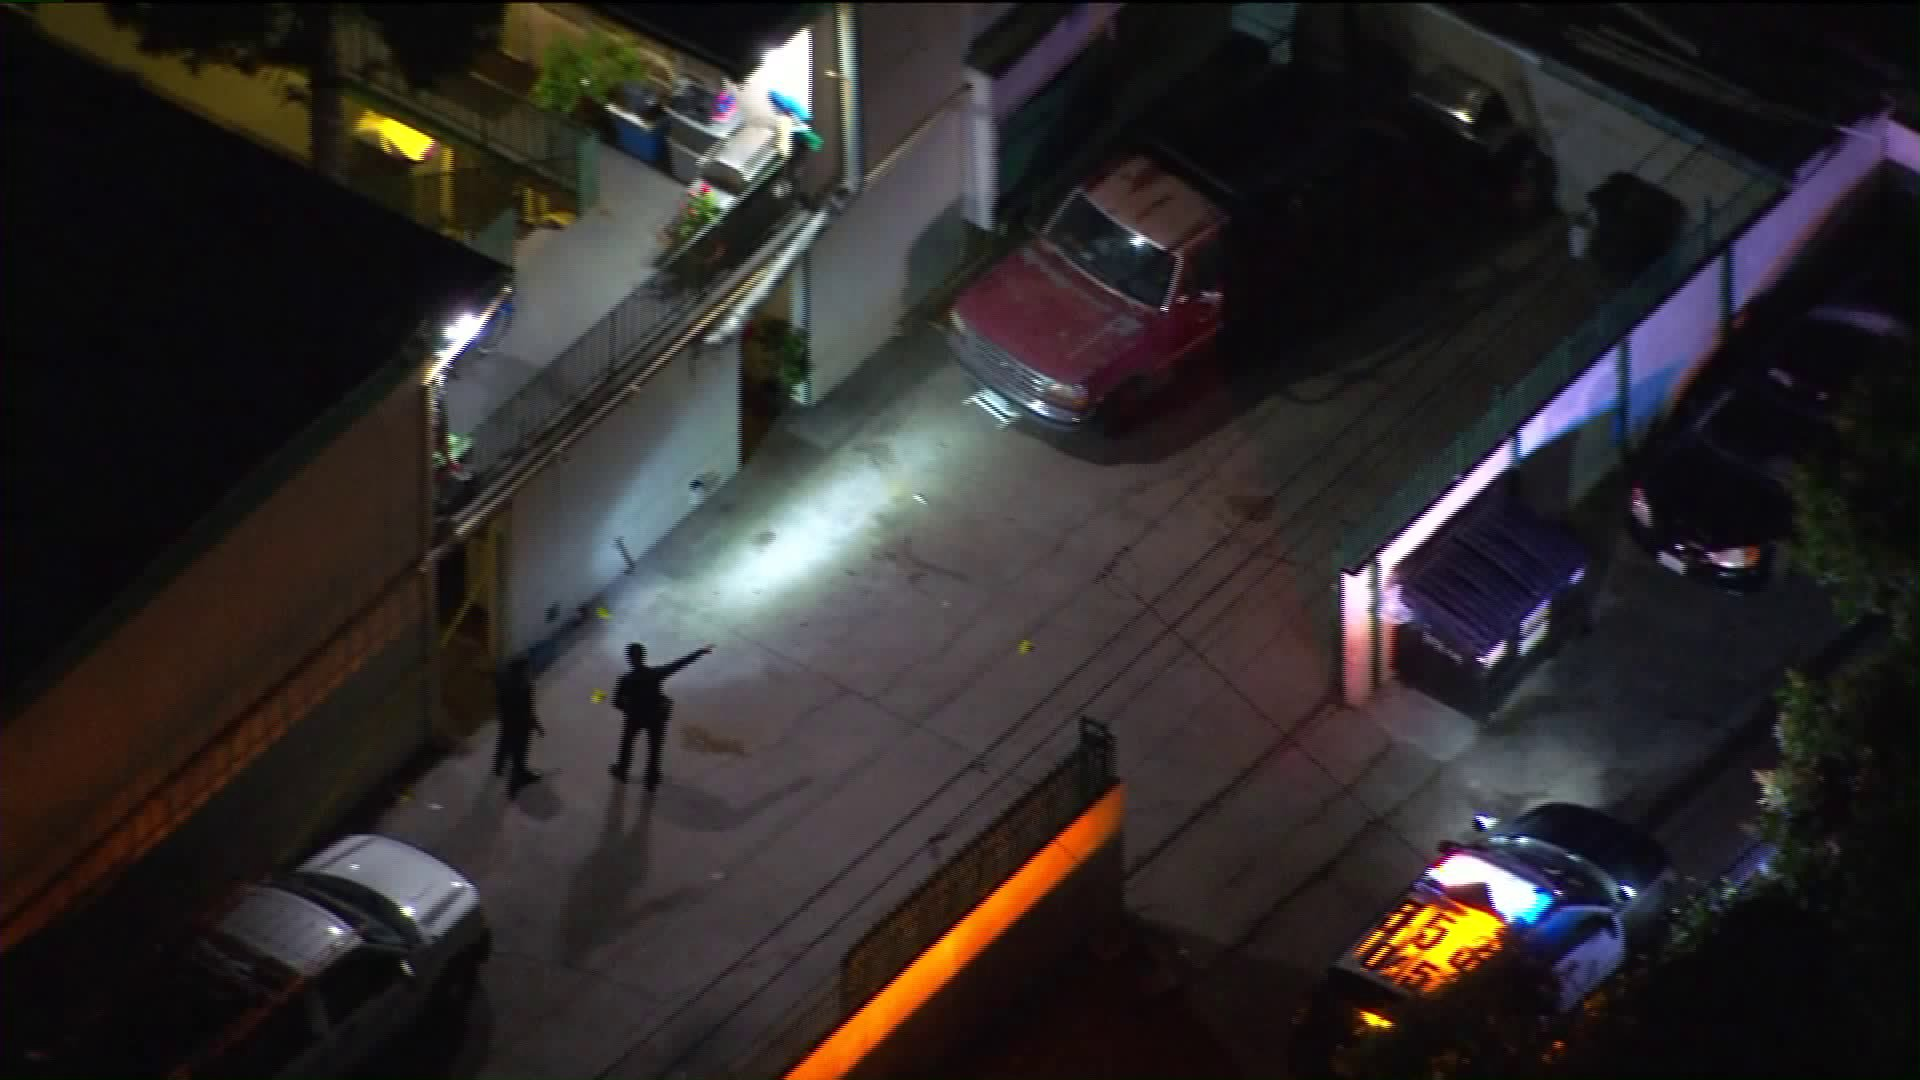 Police investigate the scene of an officer-involved shooting in Harbor City on May 27, 2019. (Credit: KTLA)